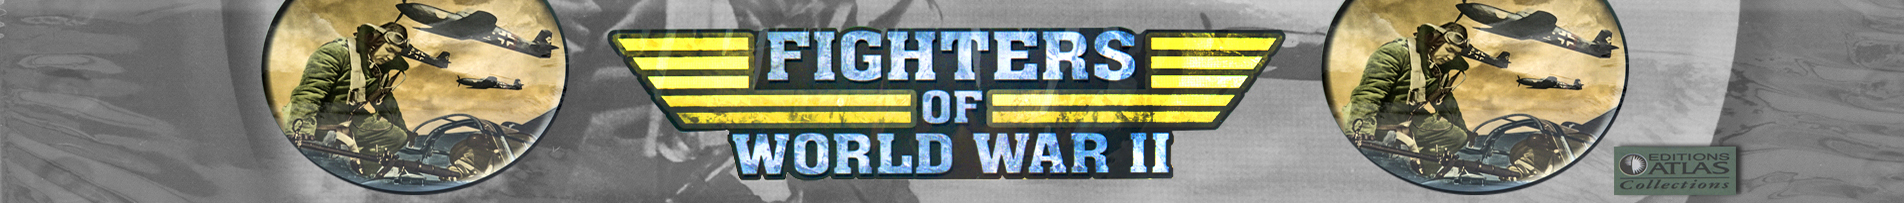 FIGHTER-OF-THE-WORLD-WAR-II_1.jpg